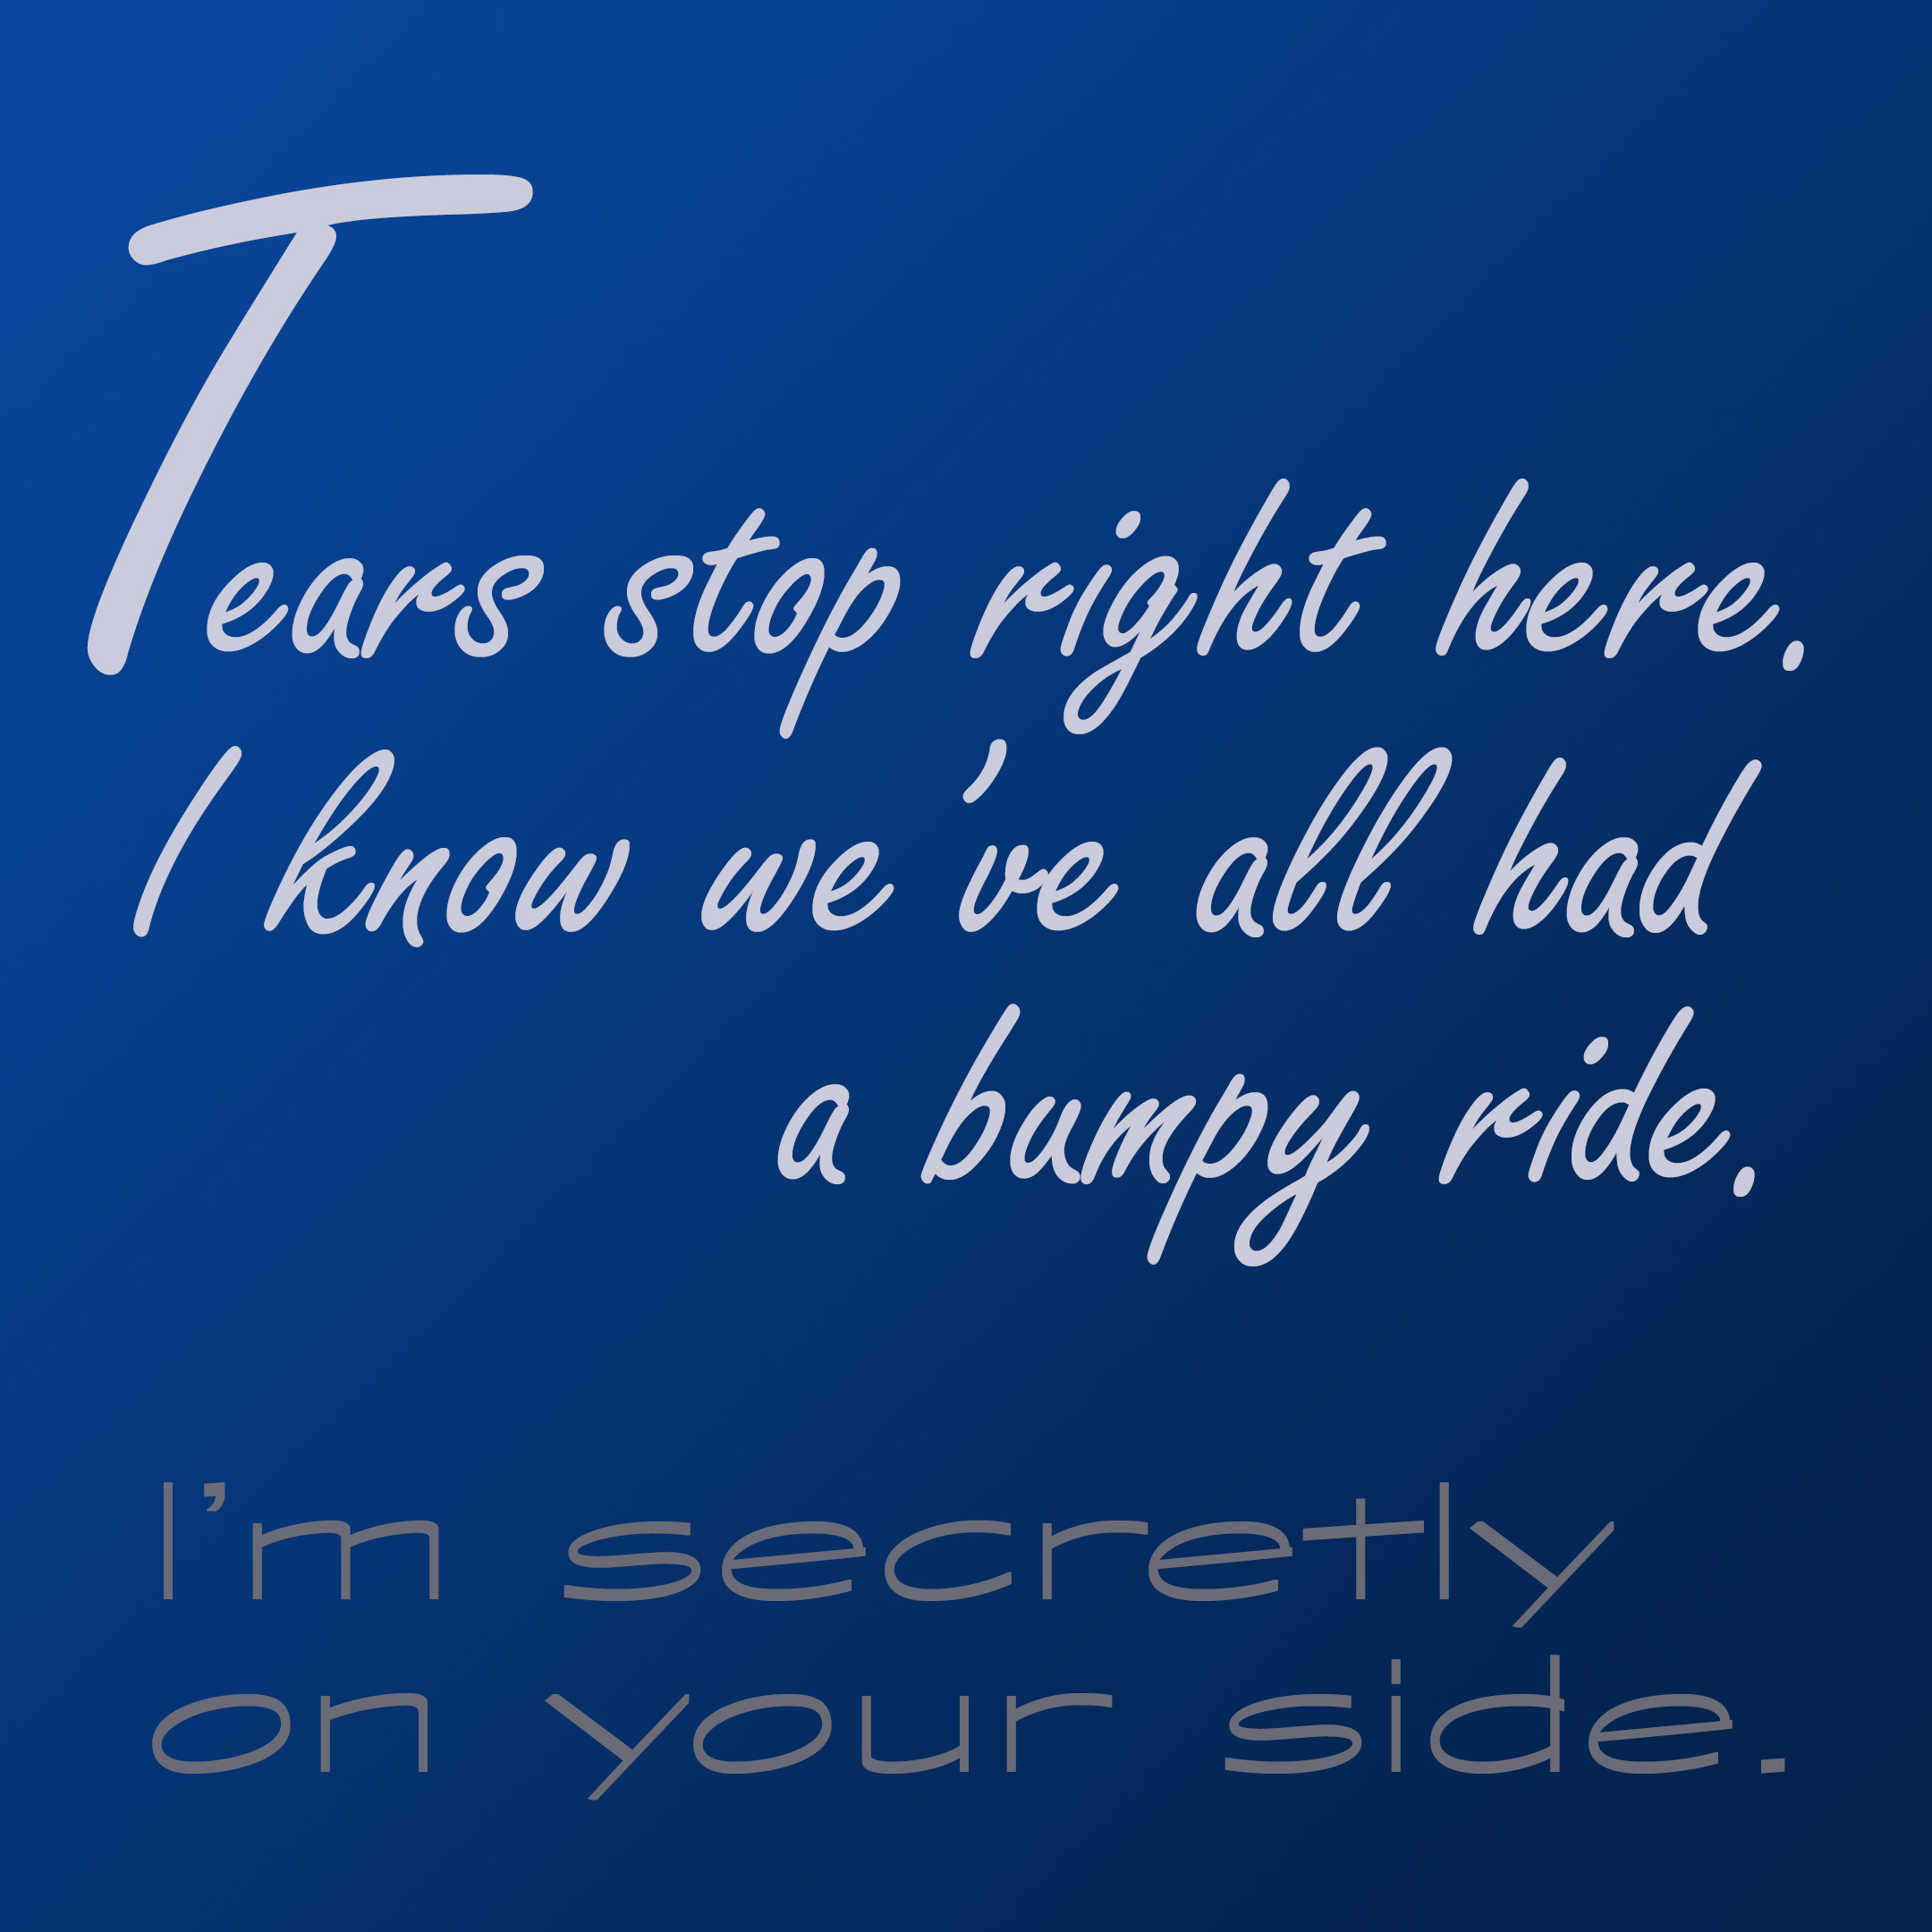 Tears stop right here. I know we've all had a bumpy ride. I'm secretly on your side.